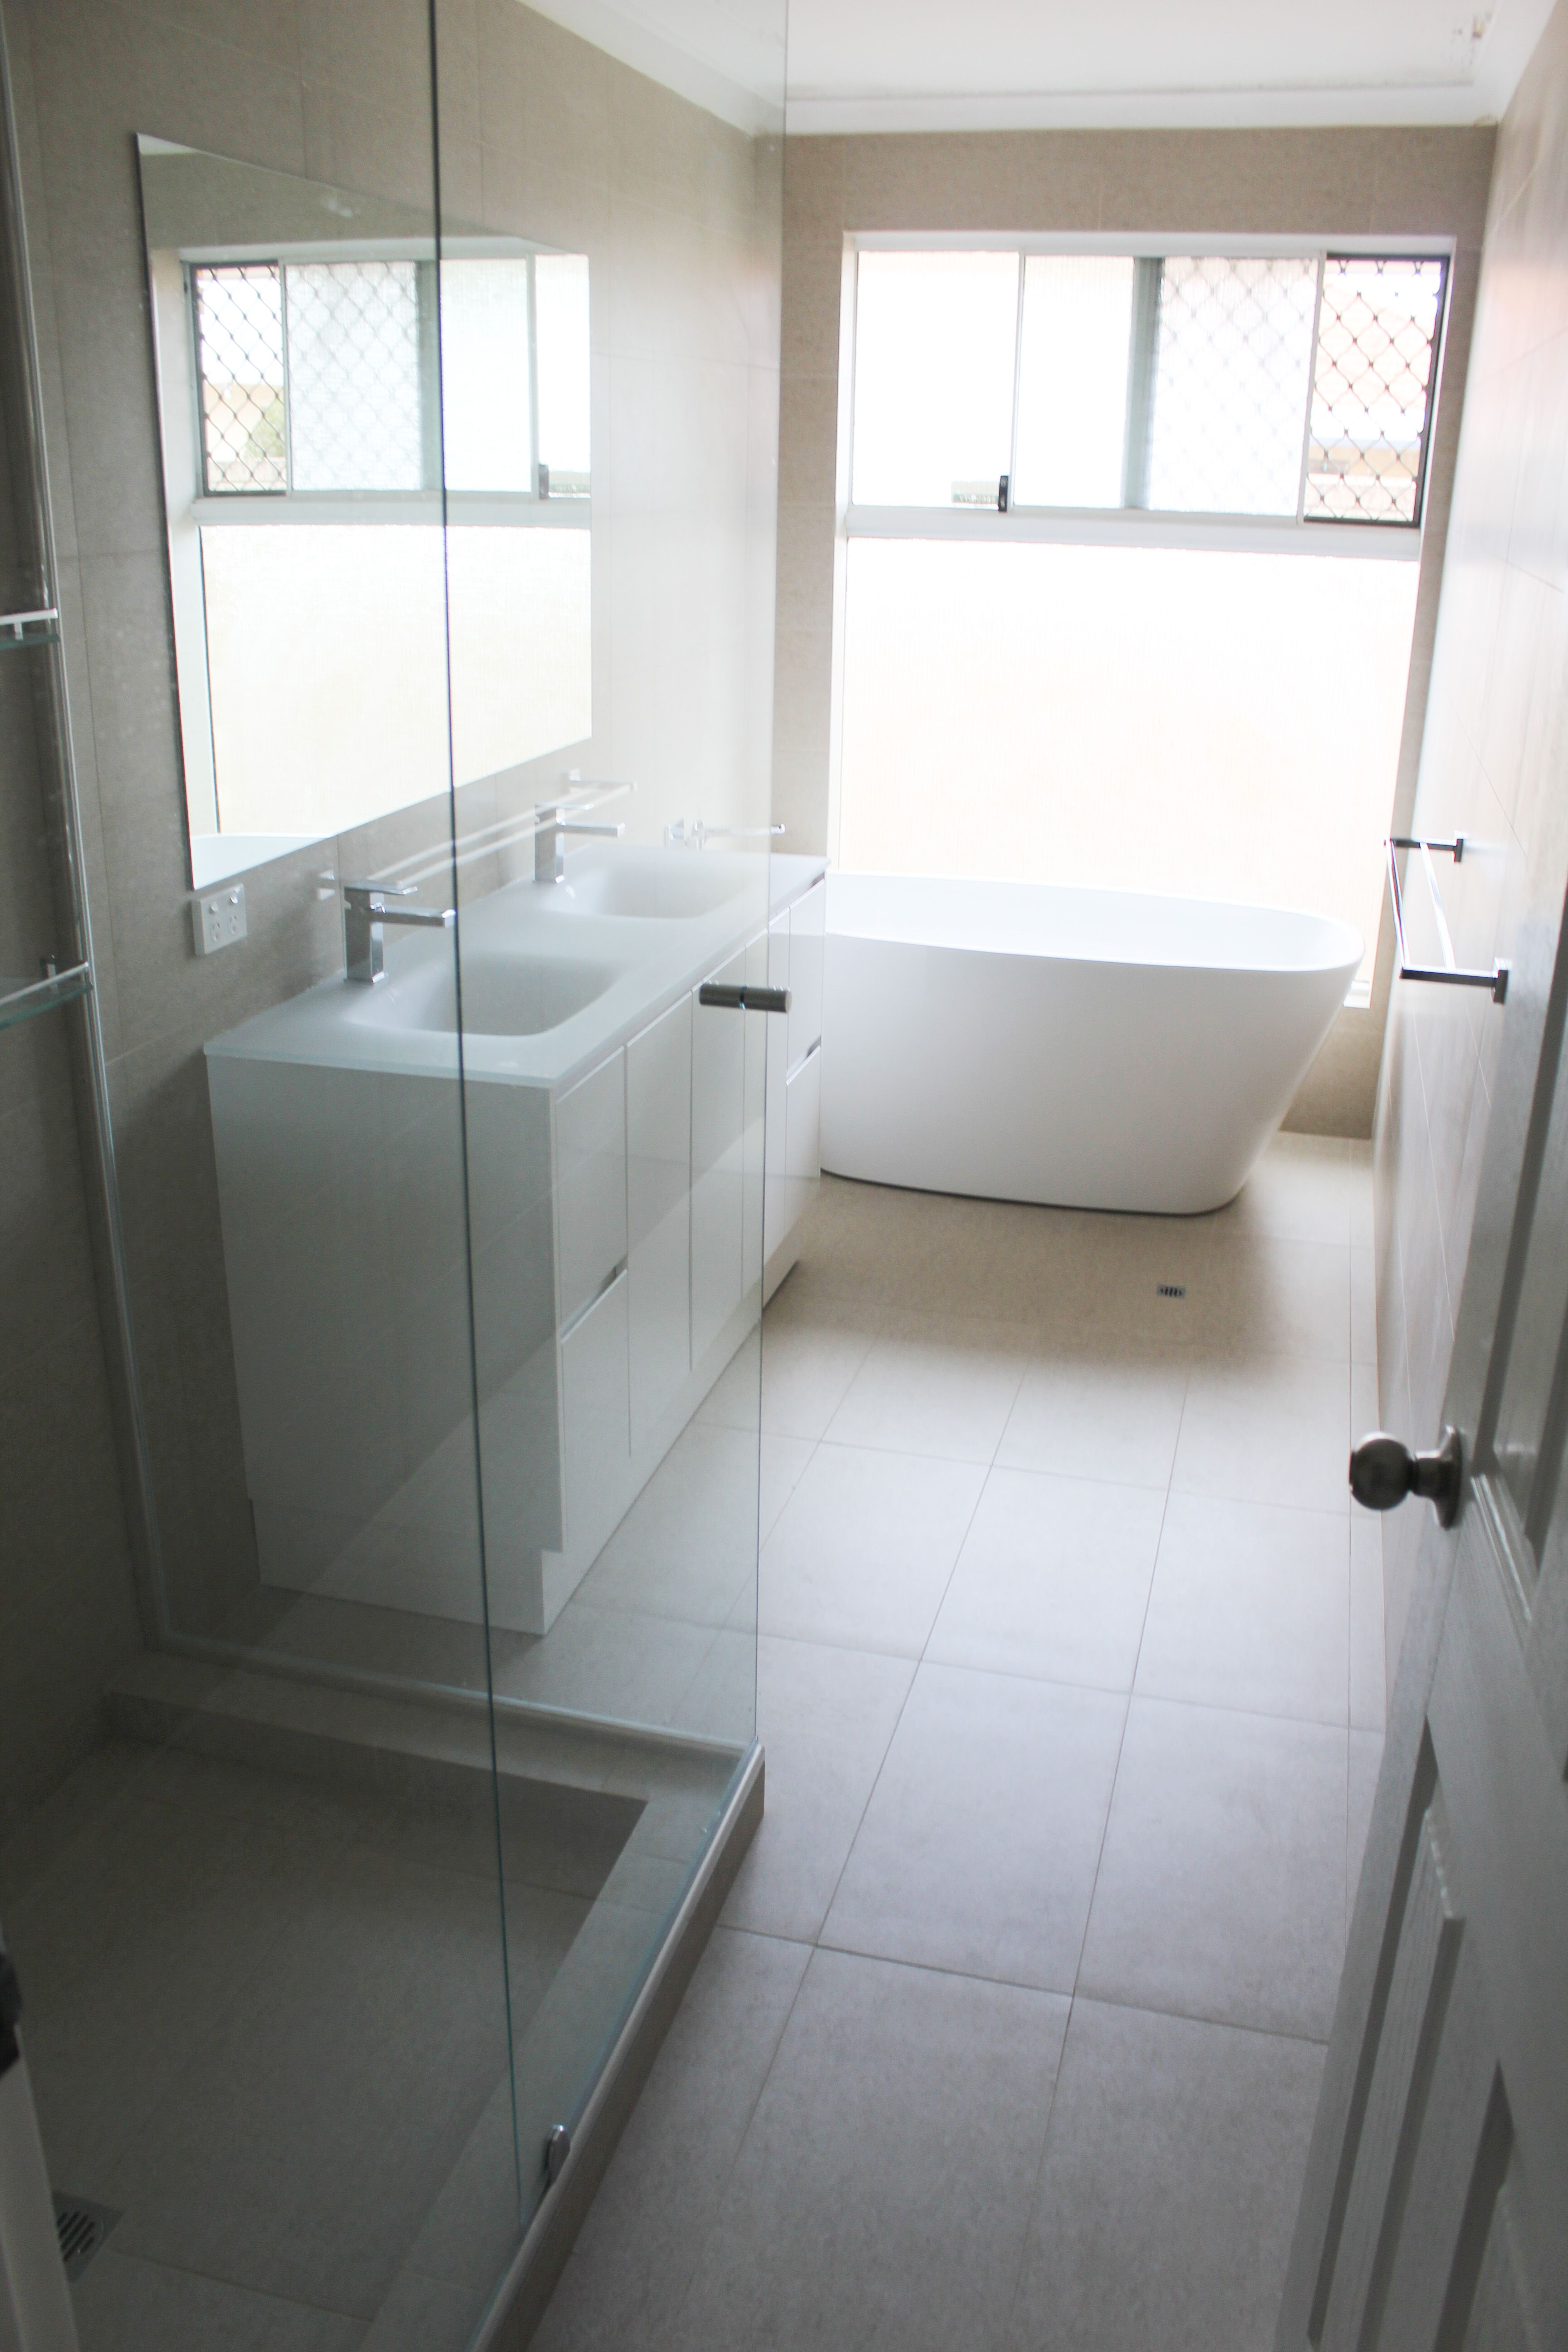 Family bathroom renovations with advice and tips on how to ...